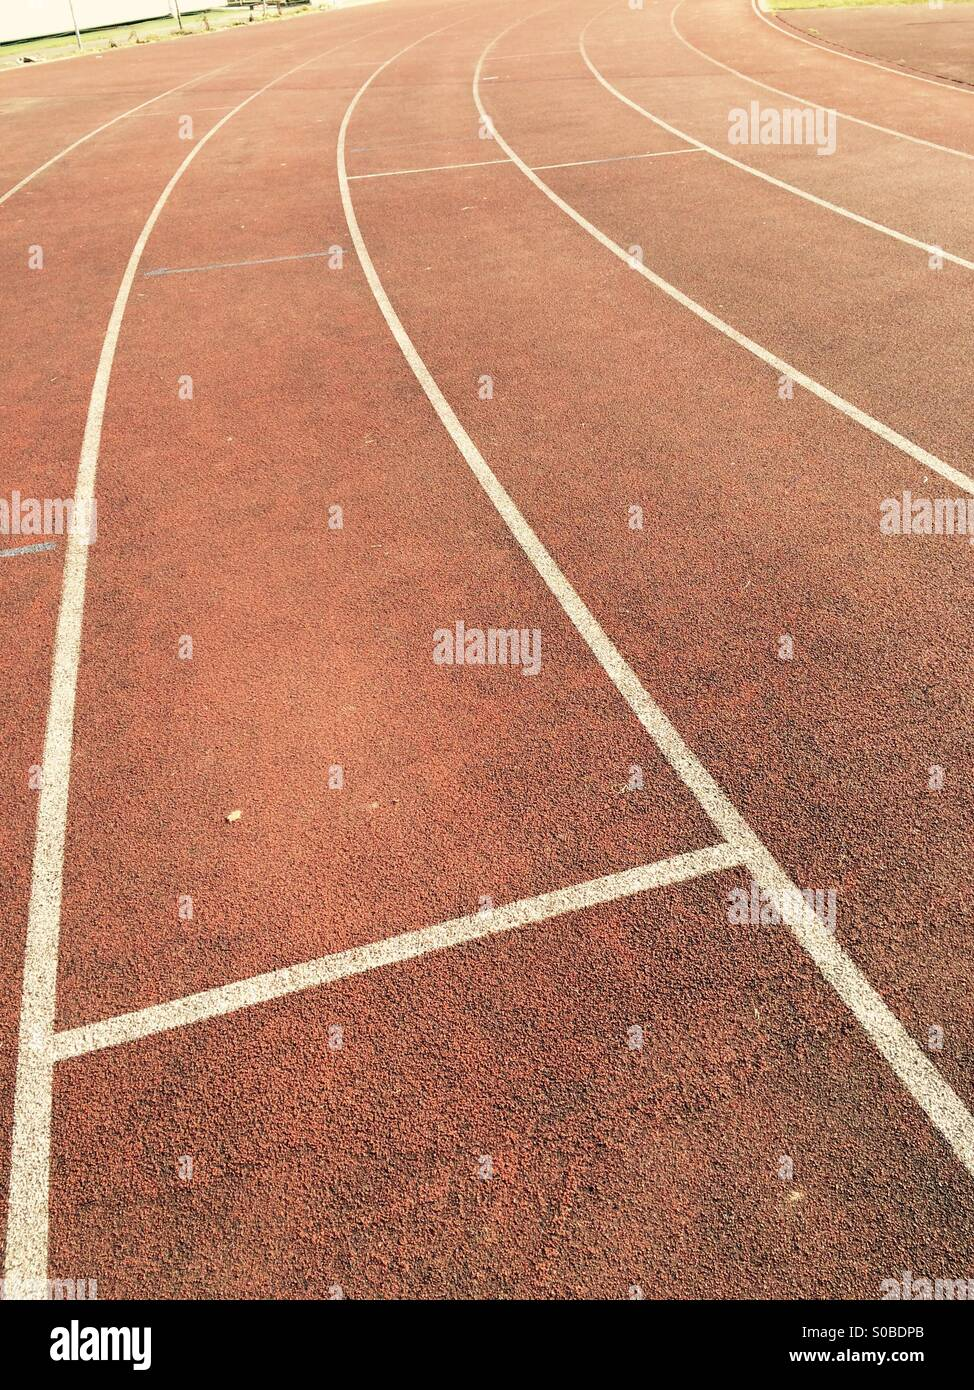 Lines on an athletics track - Stock Image